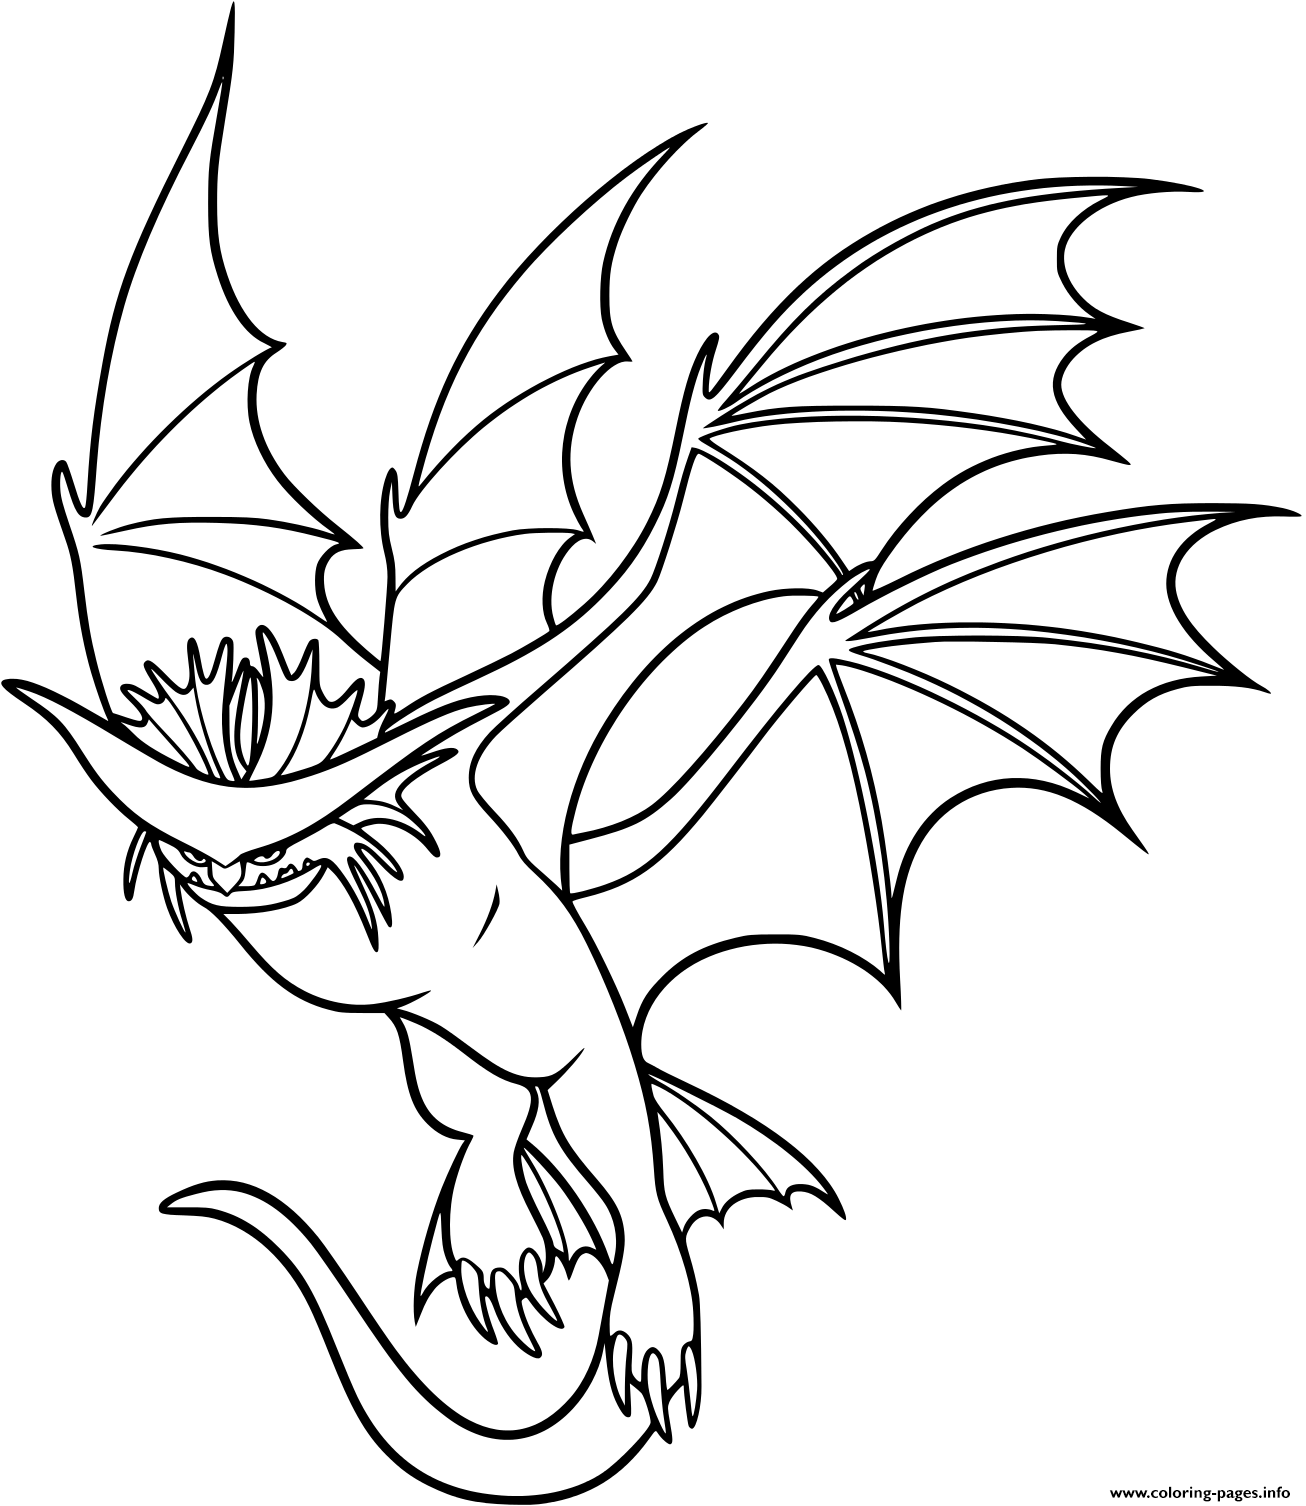 Cloudjumper Dragon coloring pages